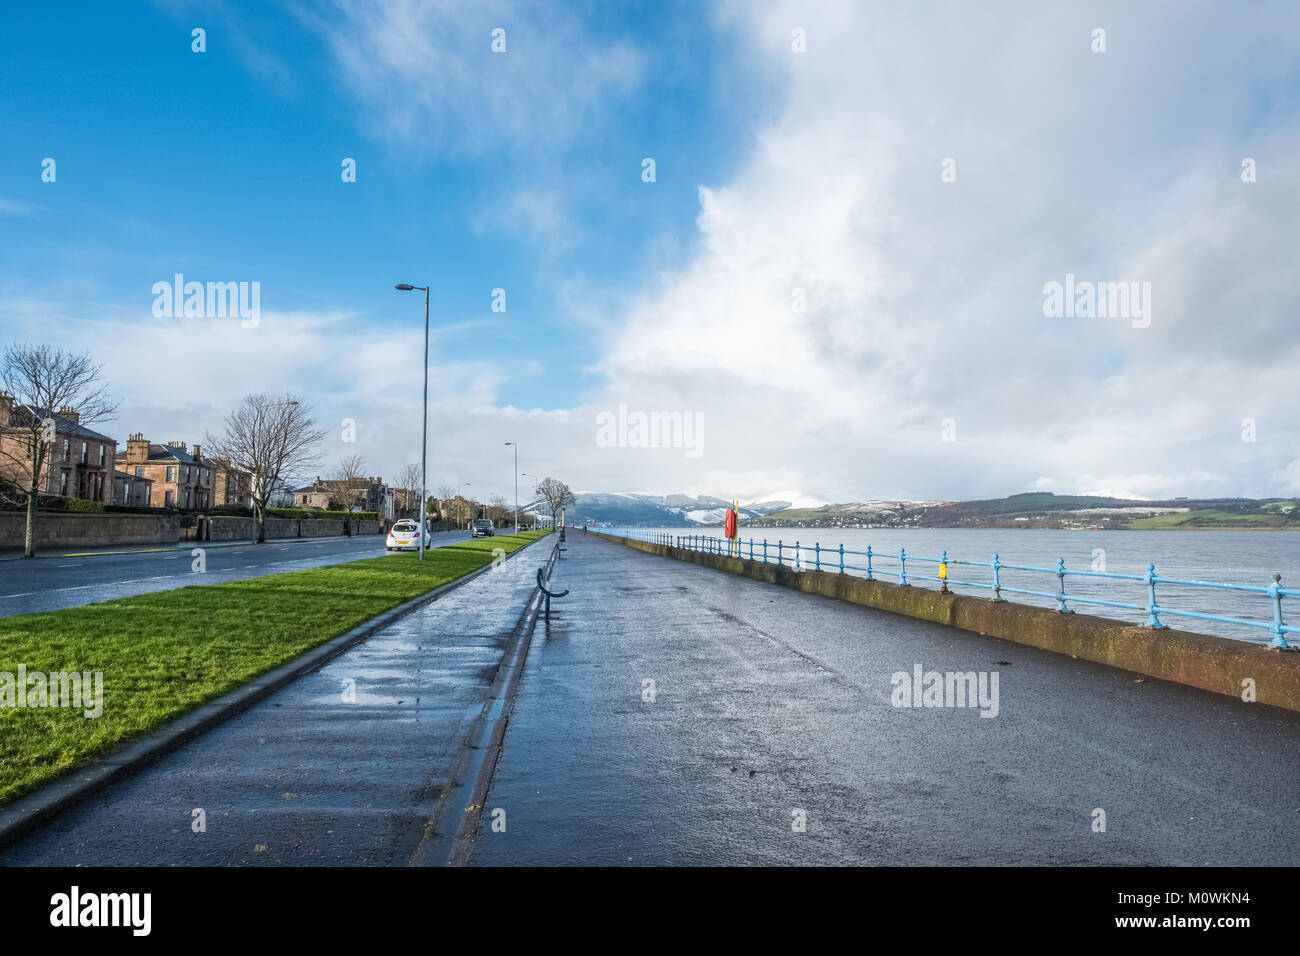 Greenock, Scotland, UK - January 19, 2018: Greenock's Esplanade in the west end of the town looking West to - Stock Image